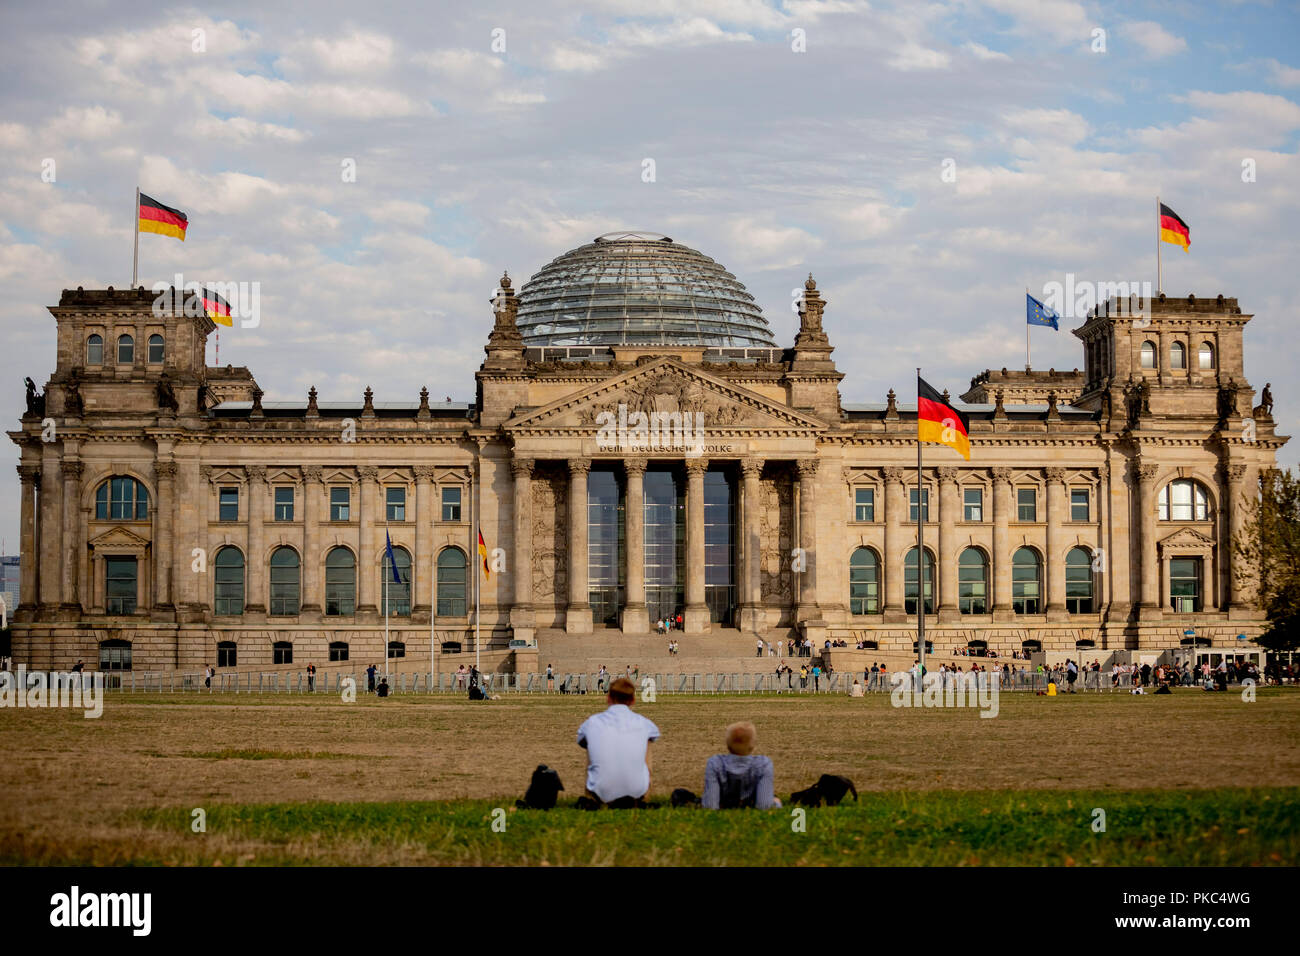 12 September 2018, Berlin: 12 September 2018, Germany, Berlin: Two men are lying on the meadow in front of the Reichstag building. Photo: Christoph Soeder/dpa - Stock Image